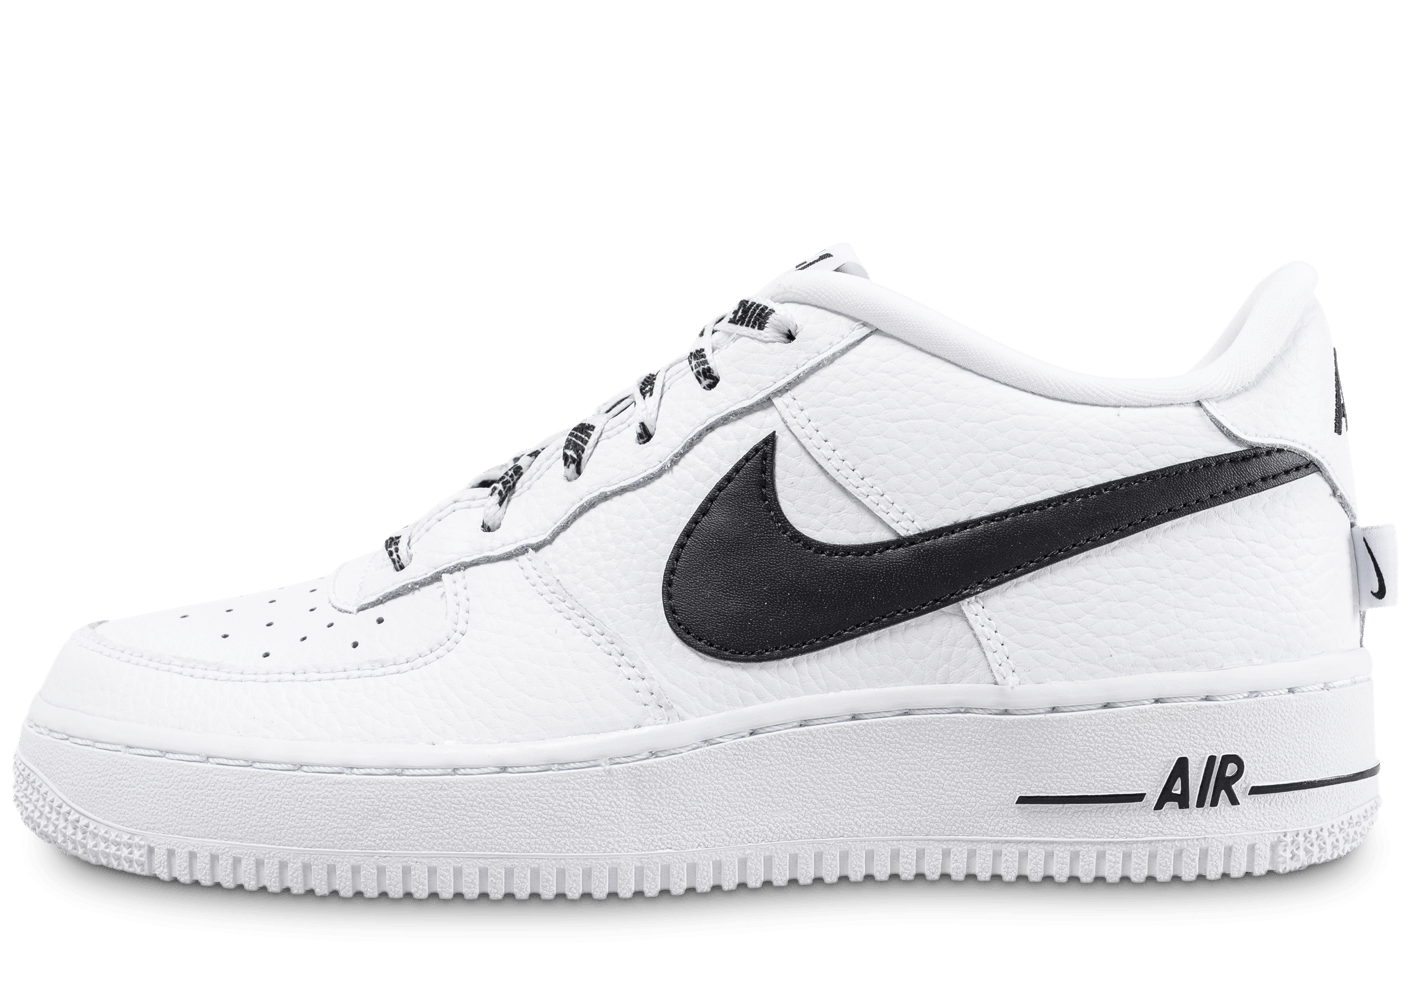 nike air force 1 lv8 nba blanche et noire chaussures. Black Bedroom Furniture Sets. Home Design Ideas